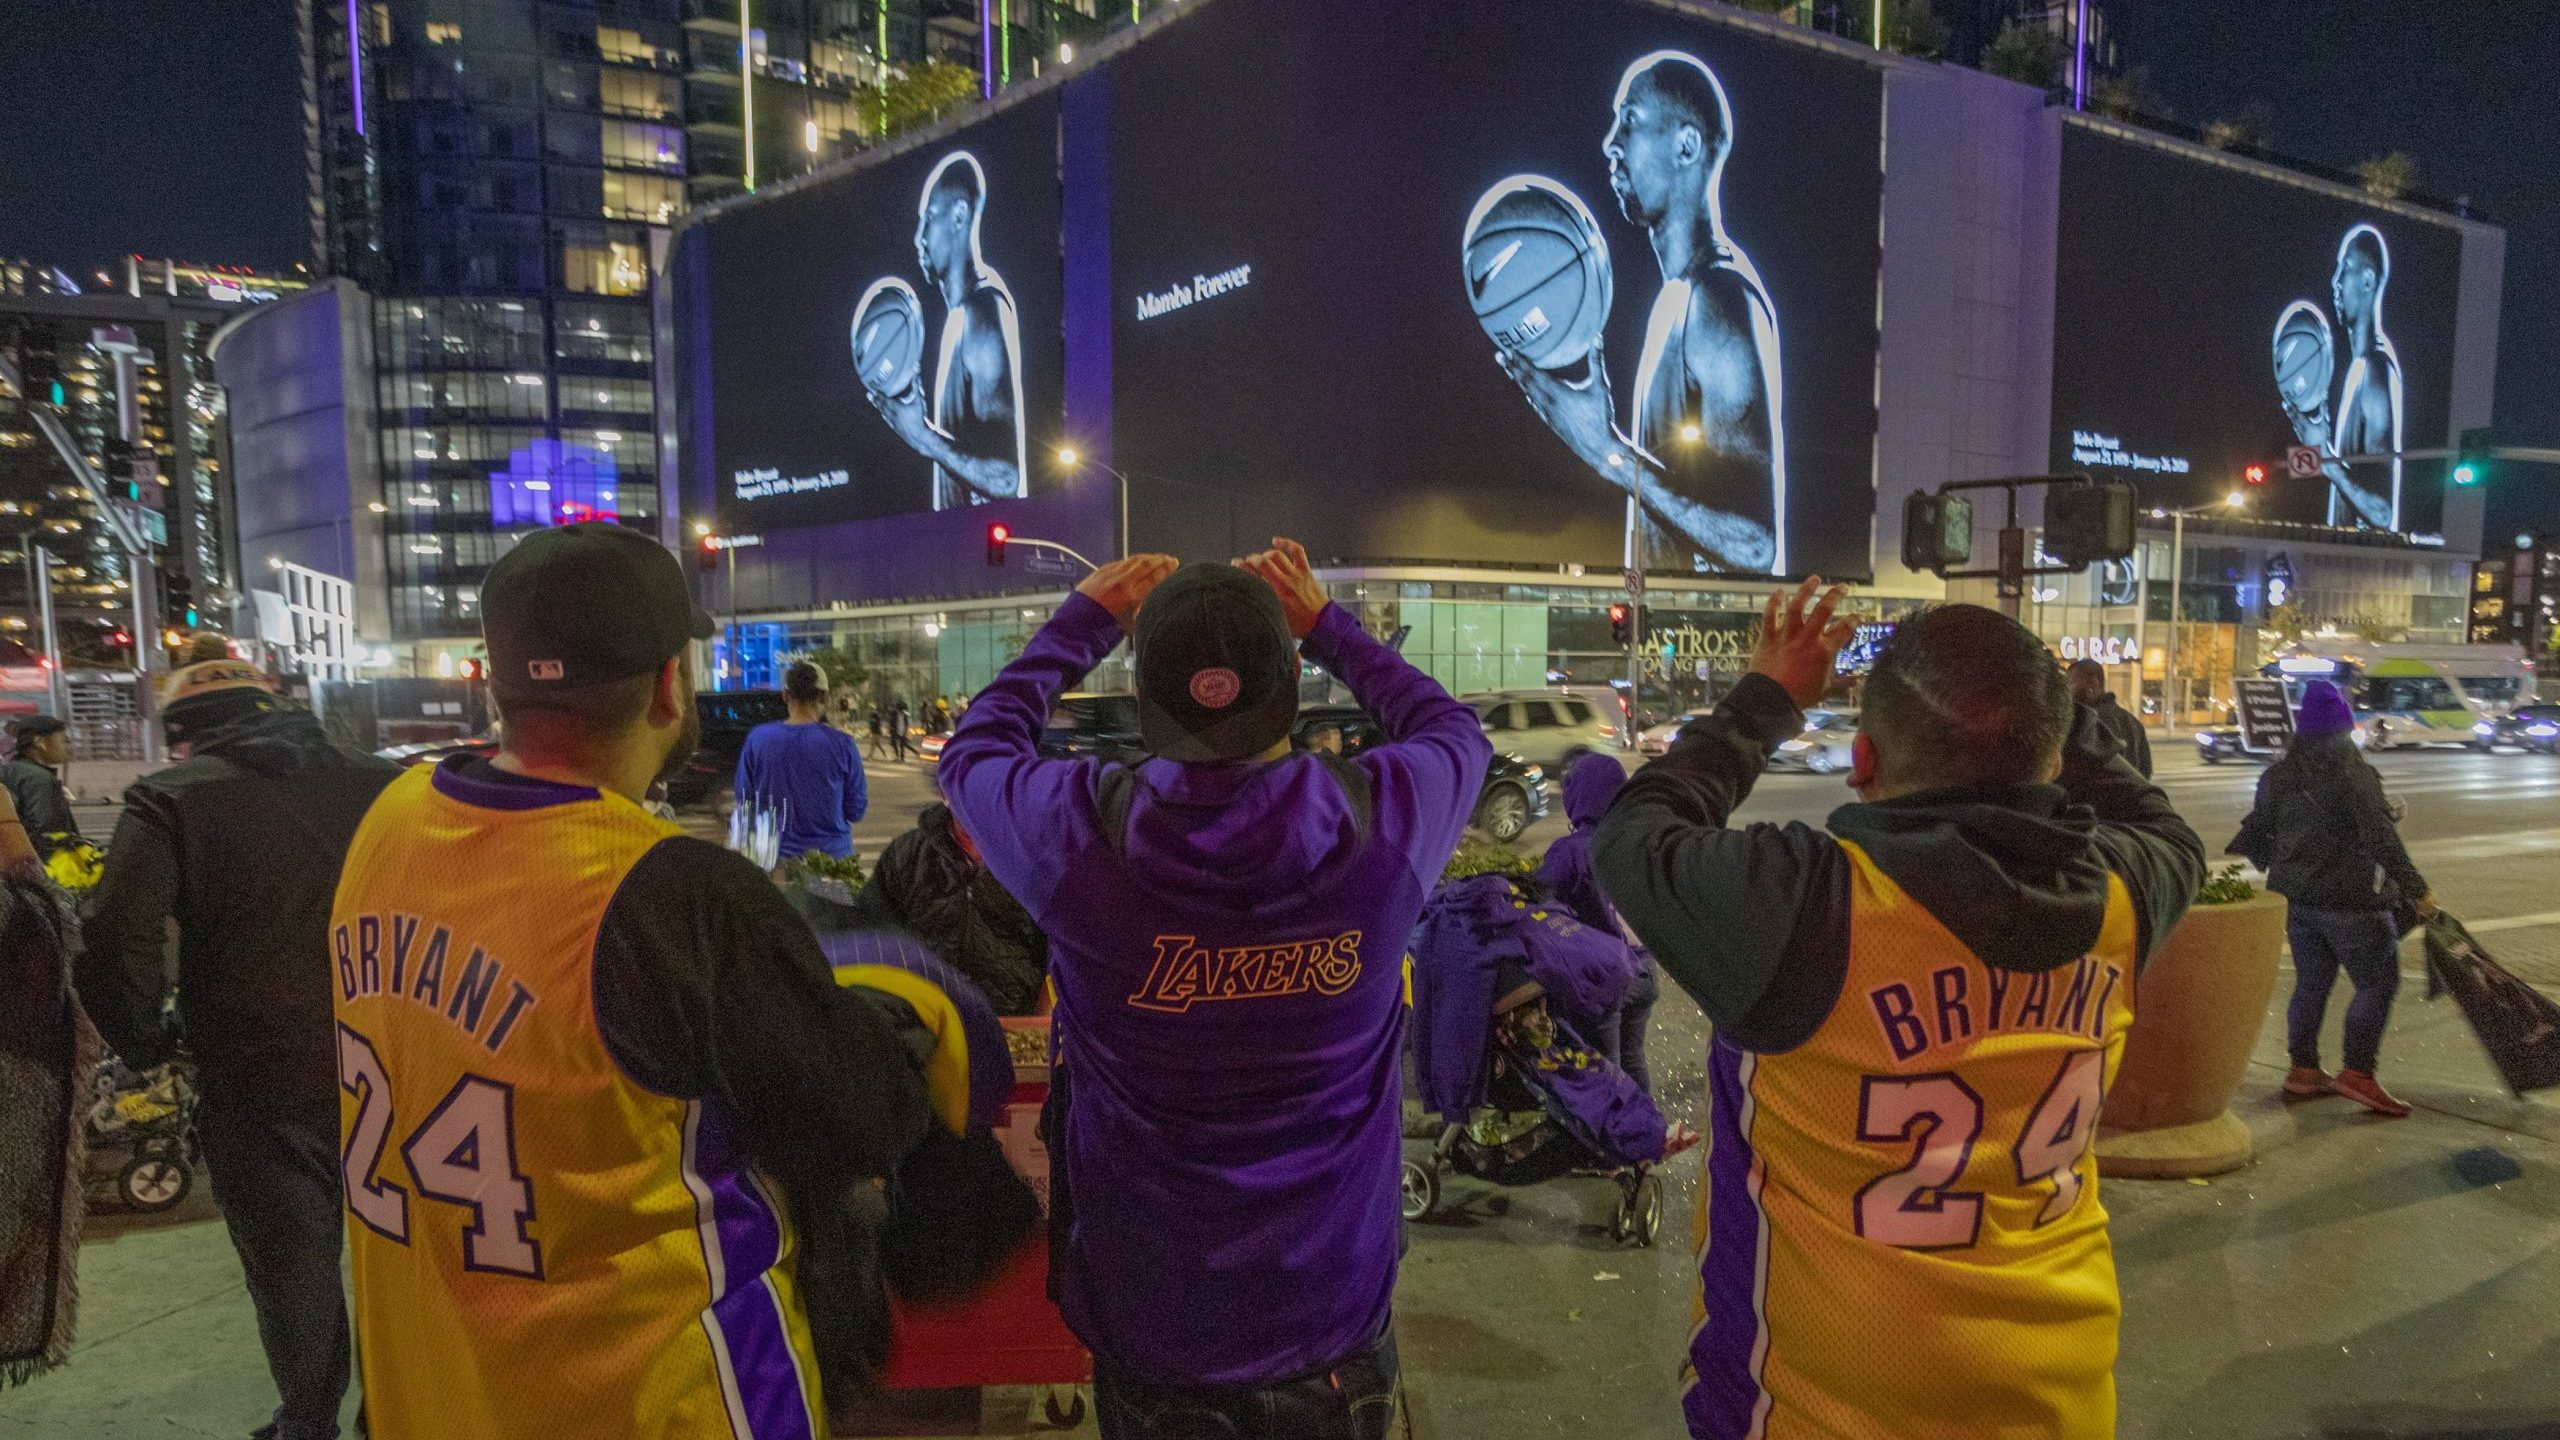 """On Jan. 28, 2020, signs in downtown Los Angeles memorialize NBA great Kobe Bryant, who along with his 13-year-old daughter, Gianna, died in a helicopter crash two days earlier. Kobe and """"Gigi"""" were among nine killed in the crash in Calabasas. (Credit: David McNew/Getty Images)"""